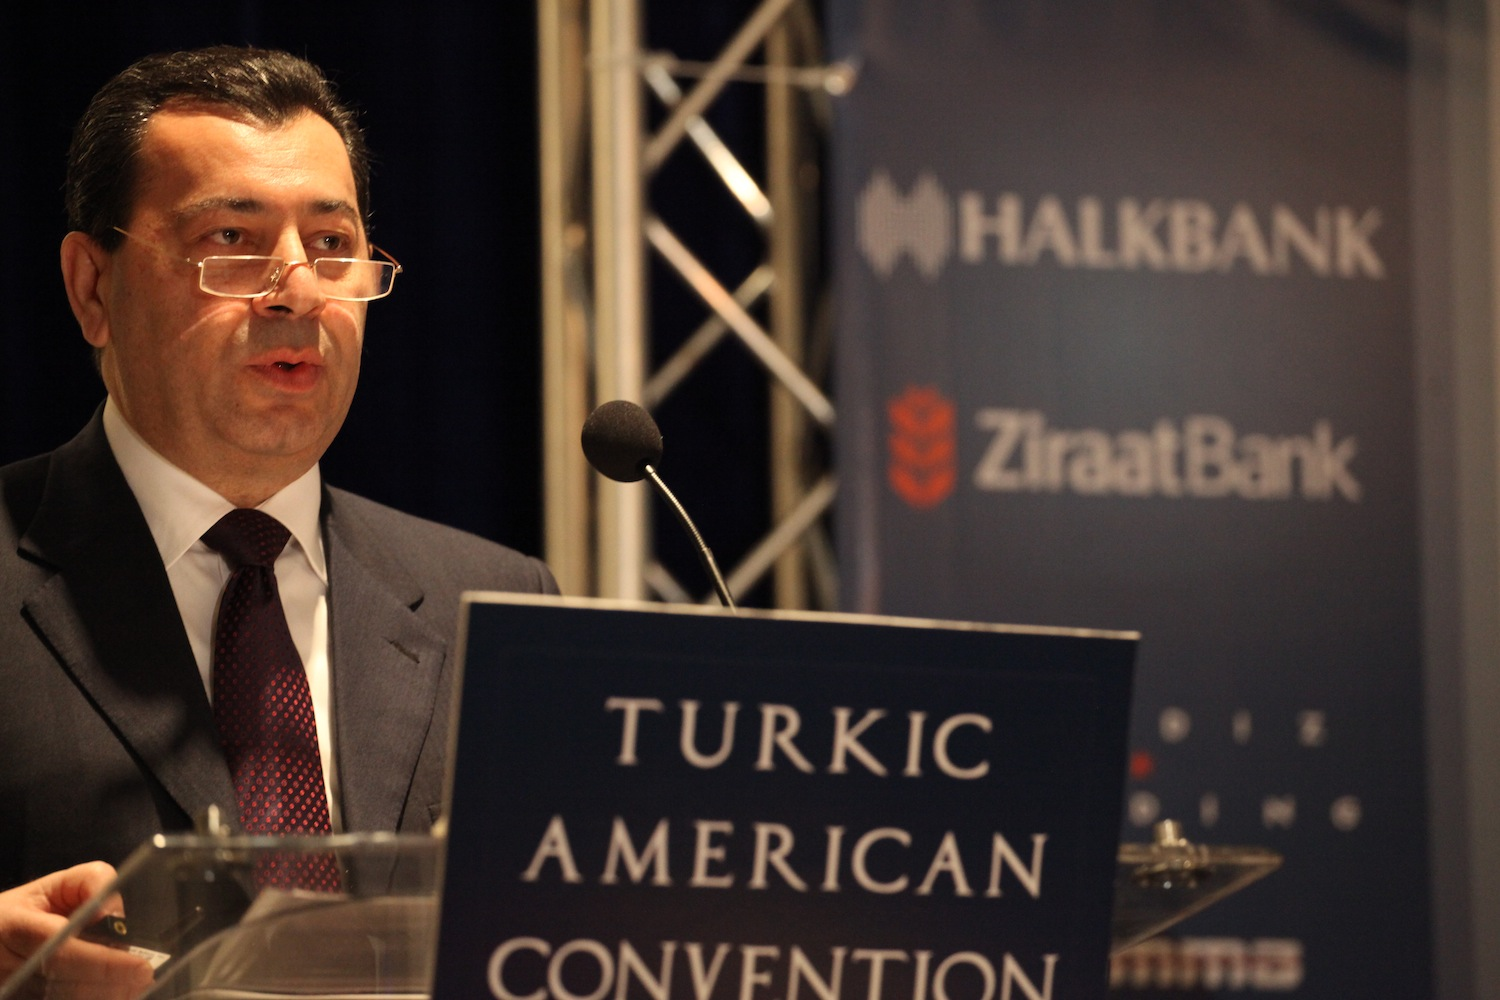 2013 Turkic American Convention a Huge Success